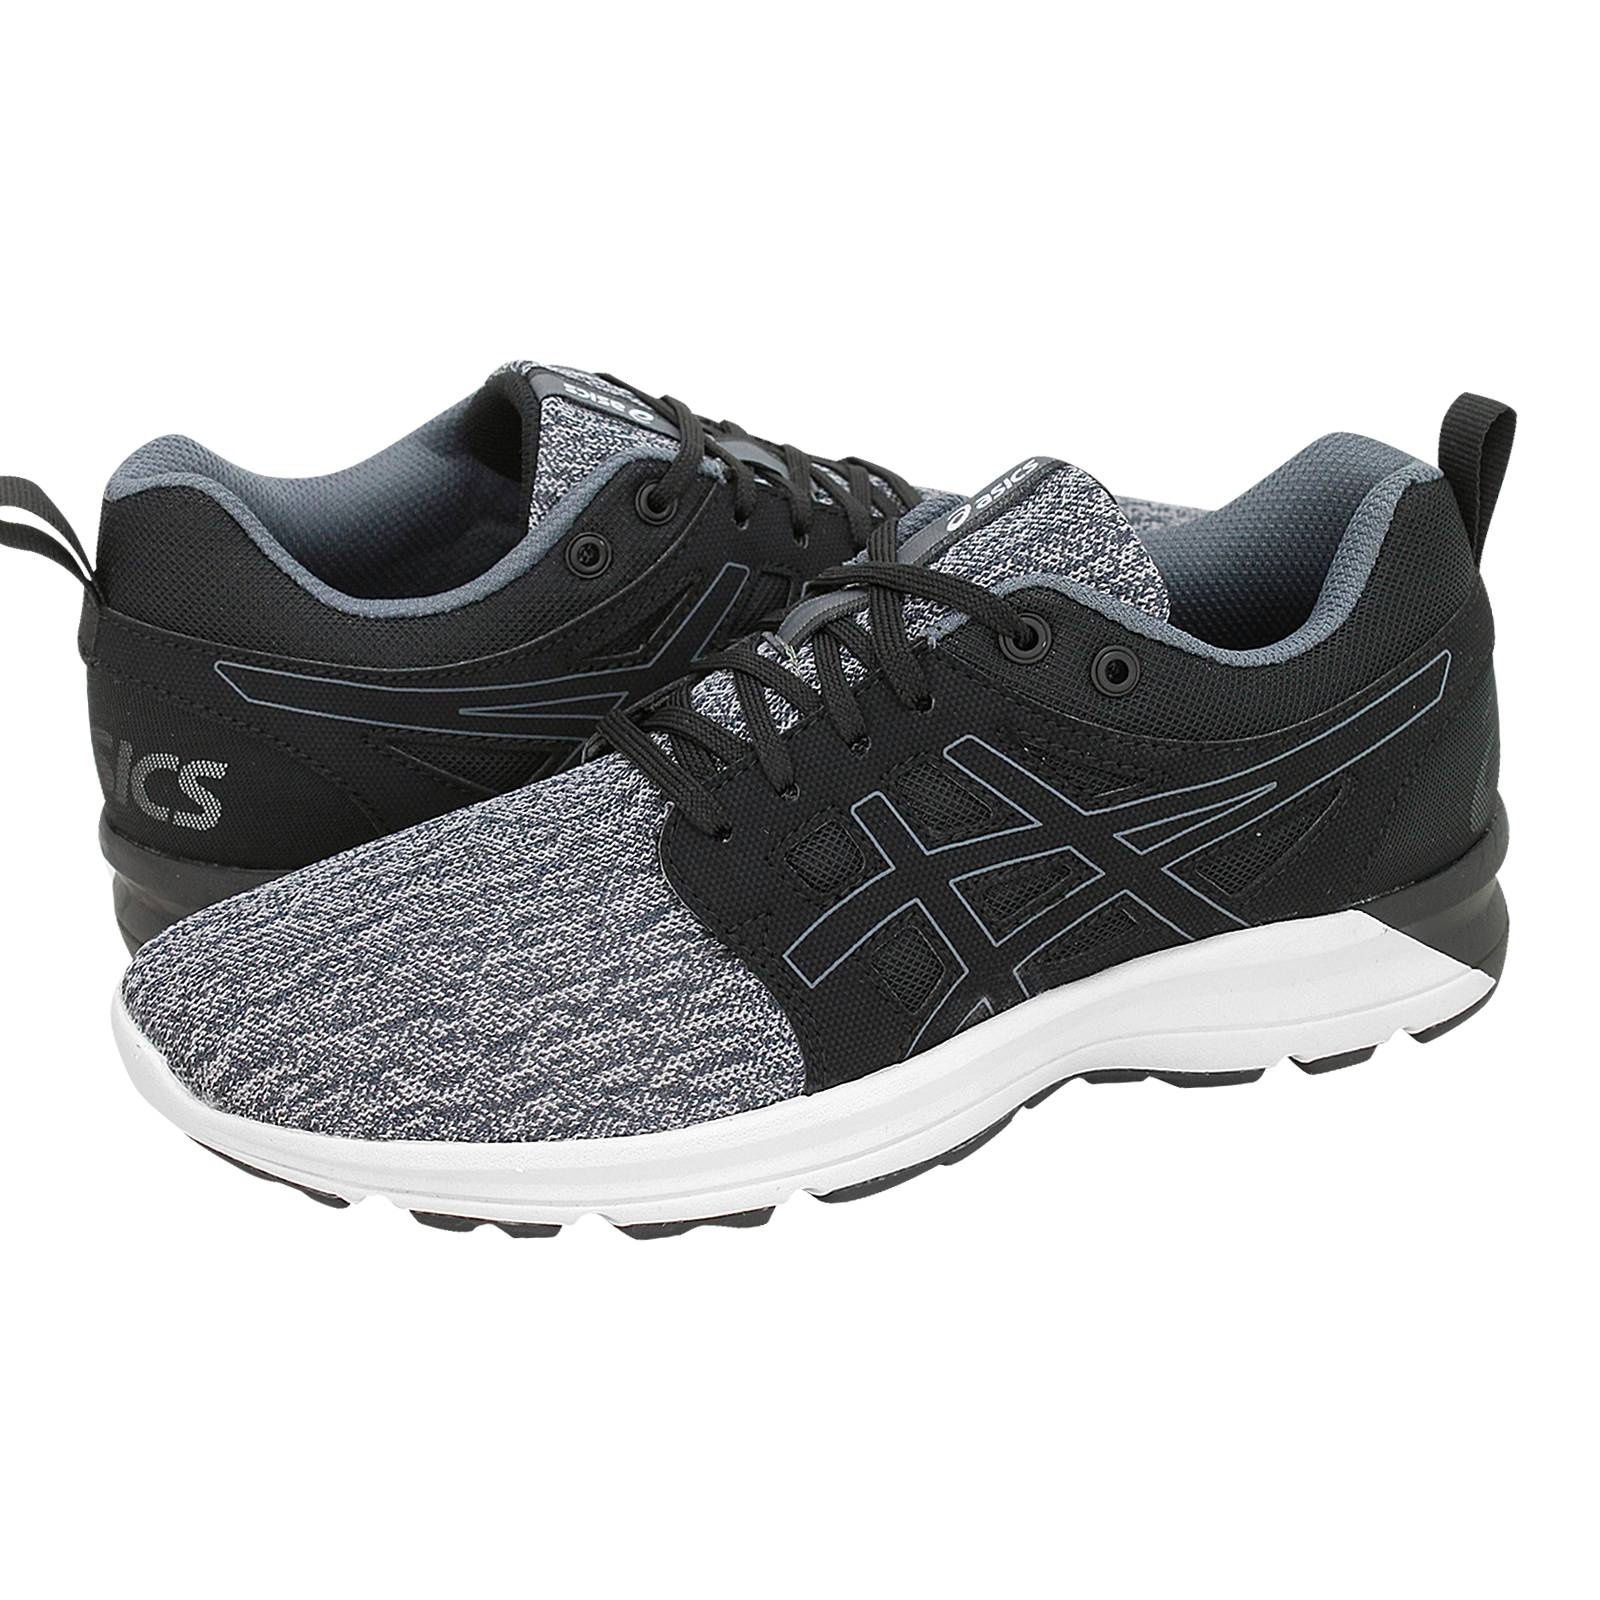 Asics Gel Torrance athletic shoes